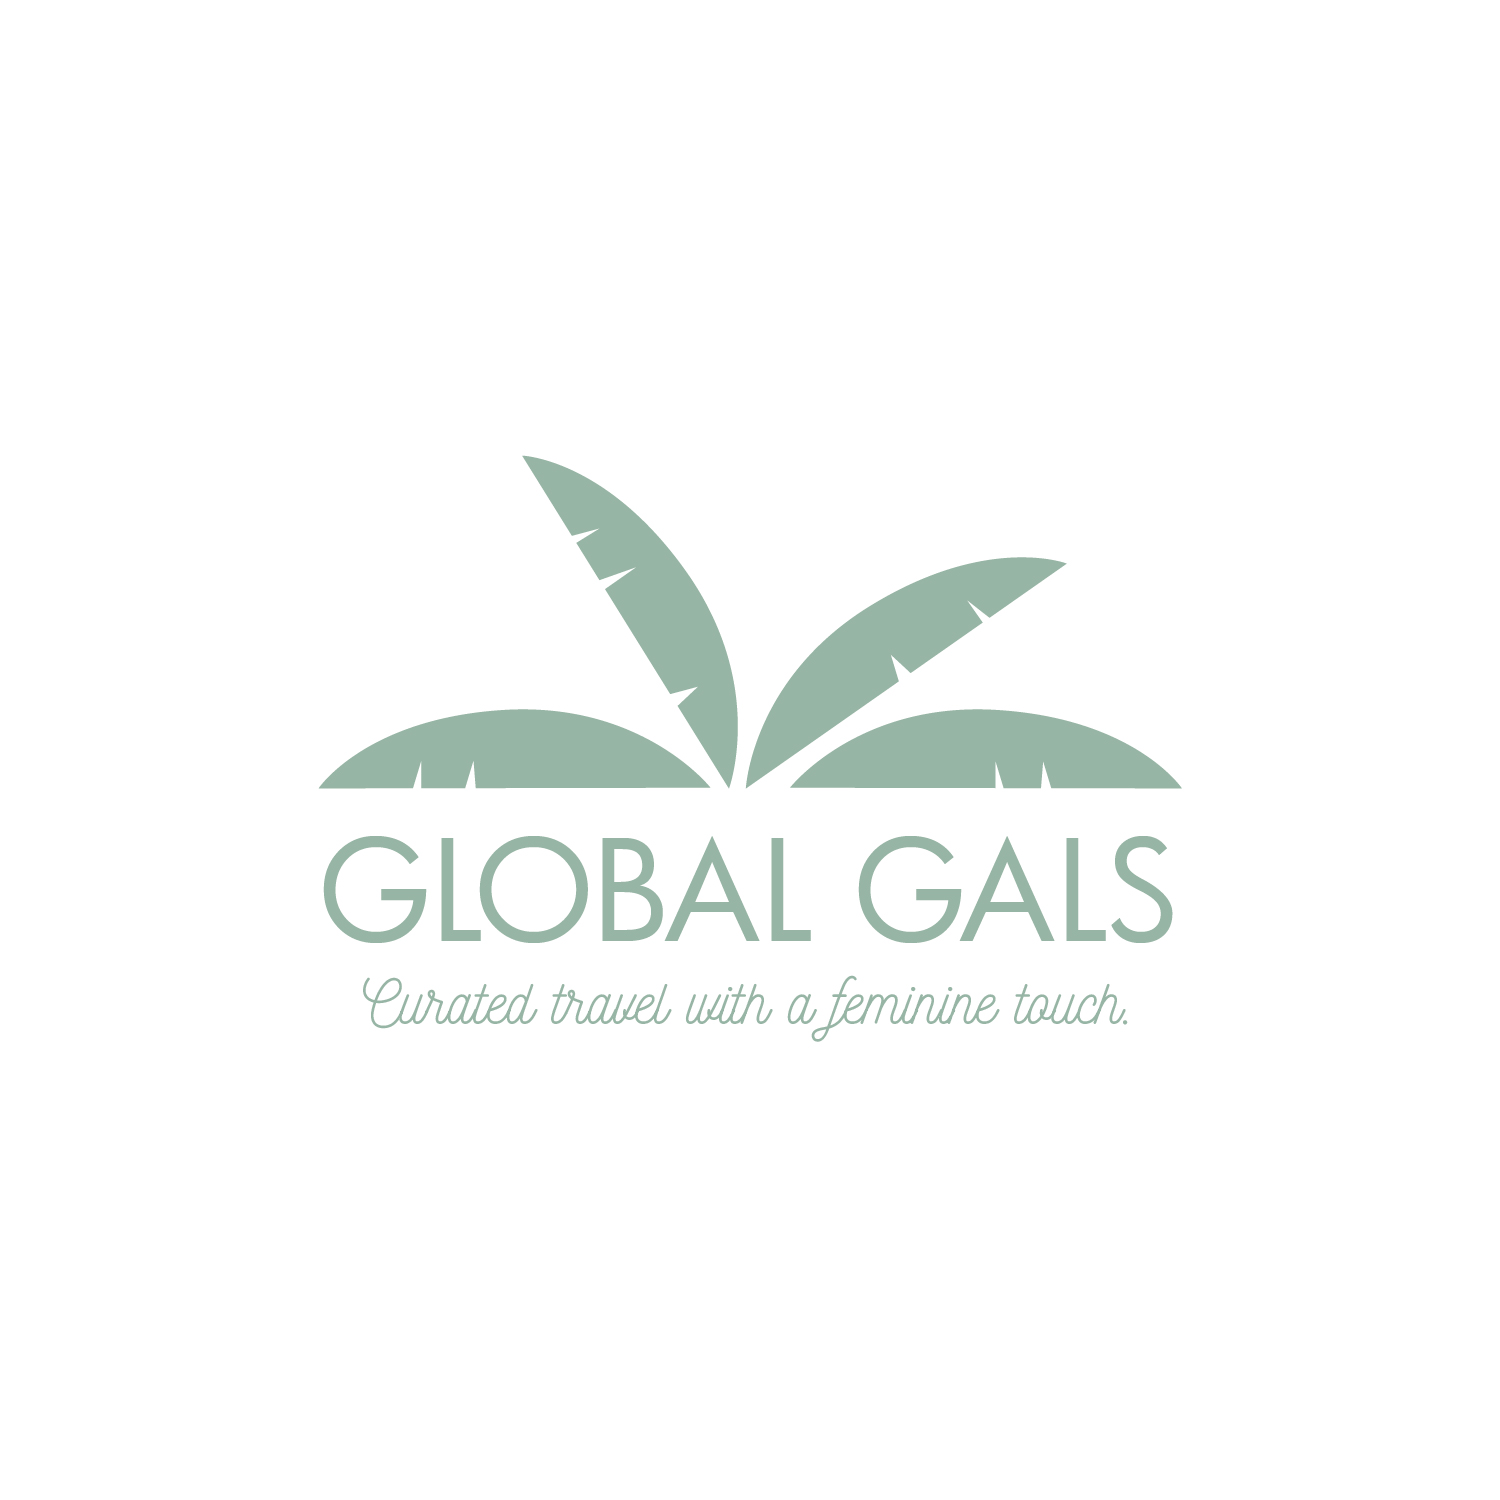 Global Gals | Logo Design | Bravebird Studio - Branding & Web Design